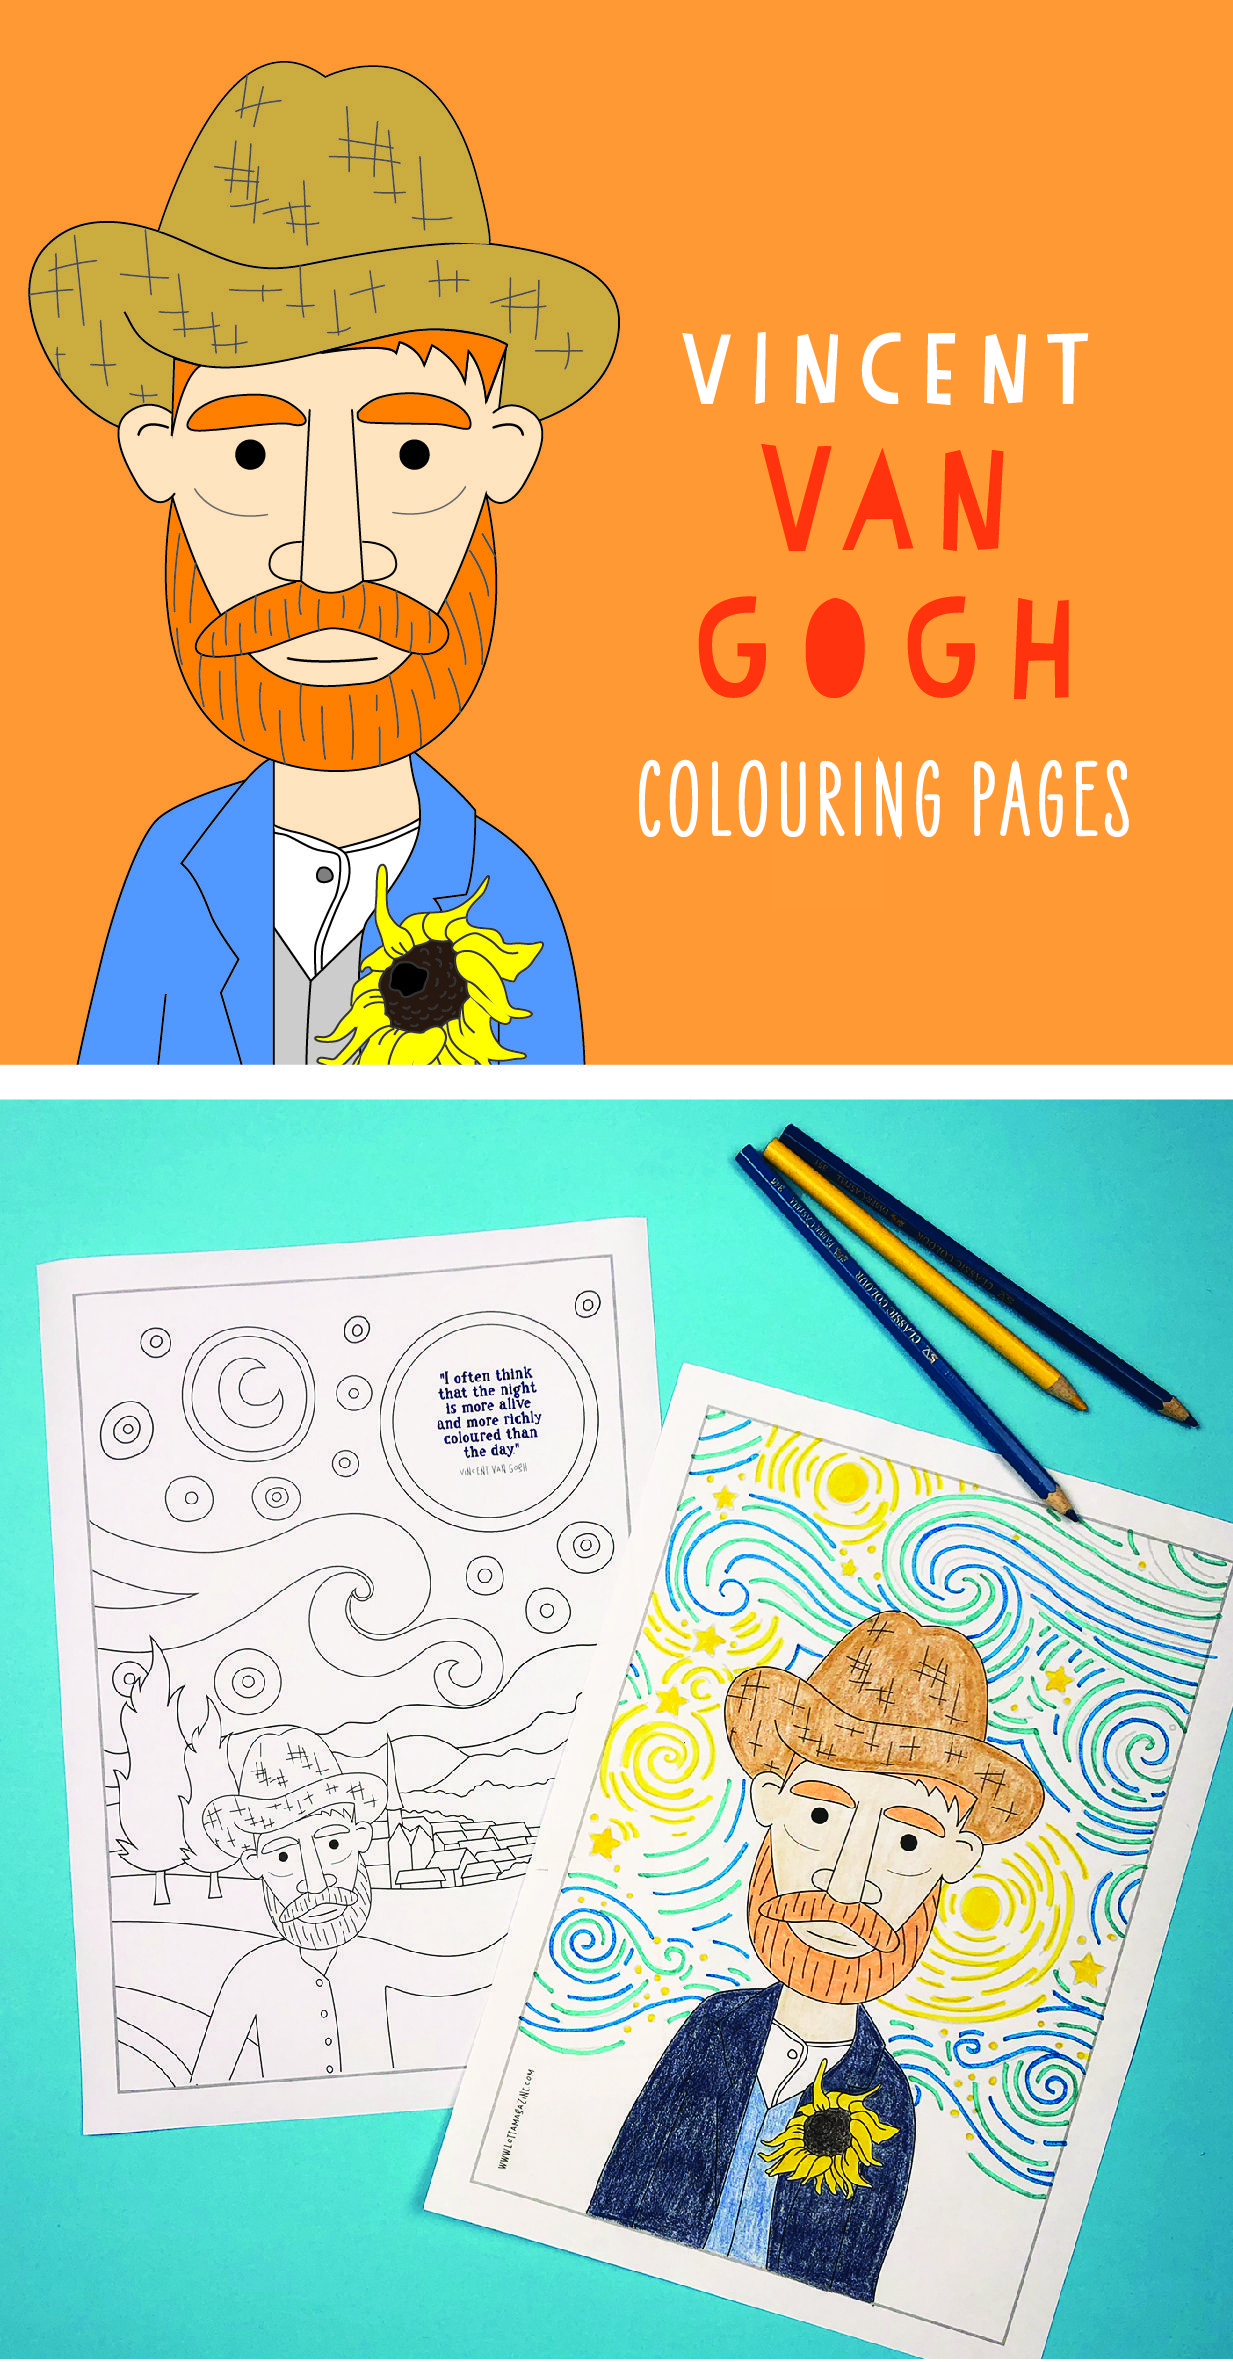 Vincent Van Gogh Colouring Pages Coloring Pages For Kids An Easy Art History Activity For Kids